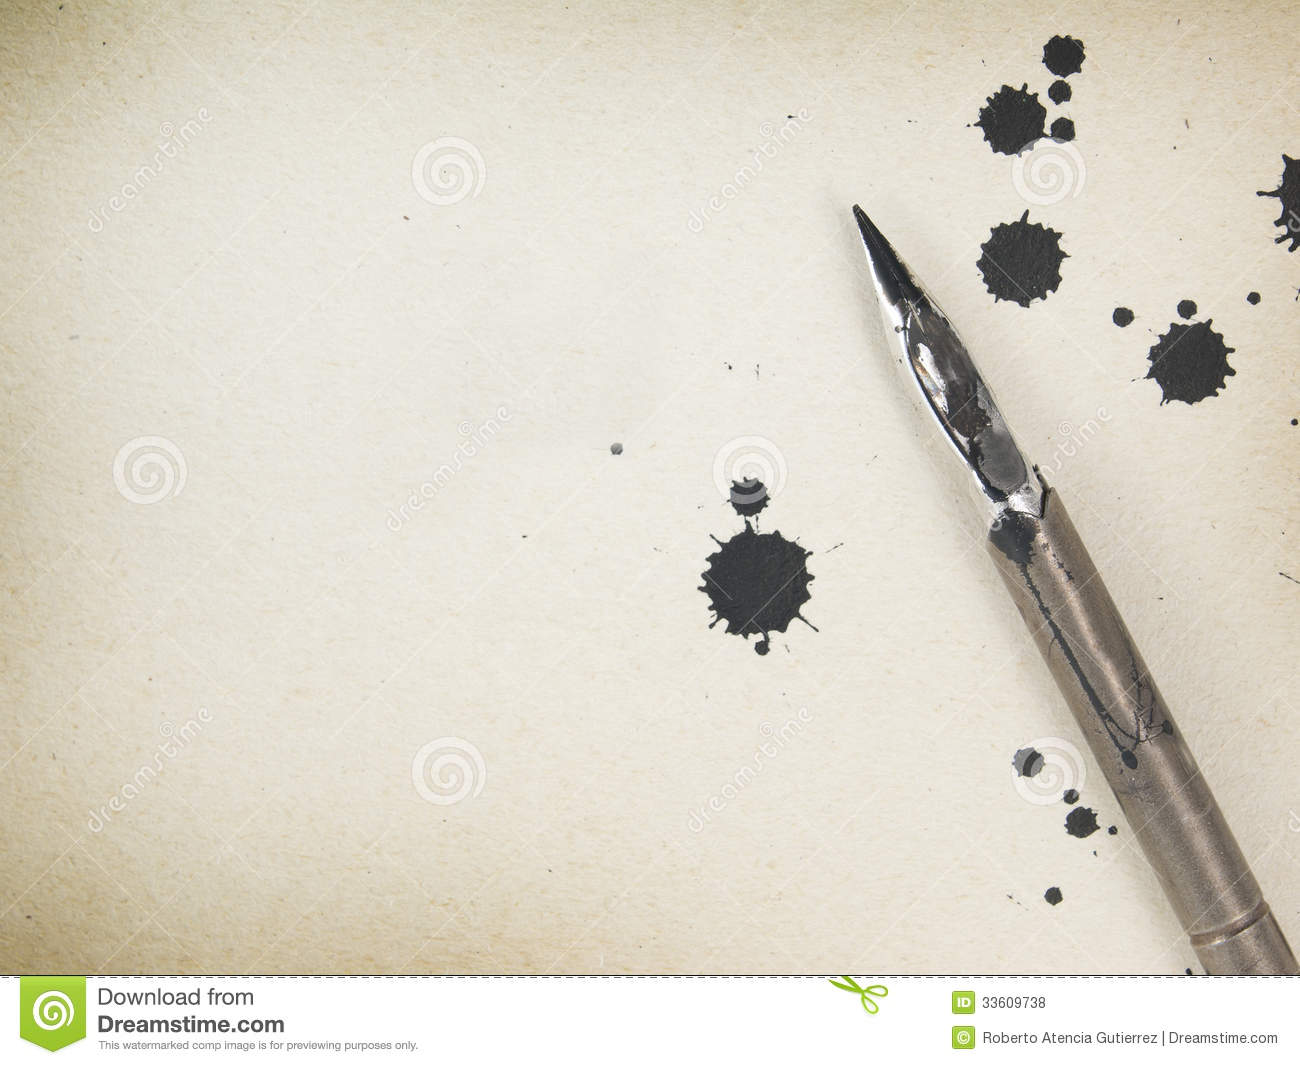 Royalty Free Stock Photos Old Paper Background Ink Quill Pen Image33609738 on Latest Old English Writing